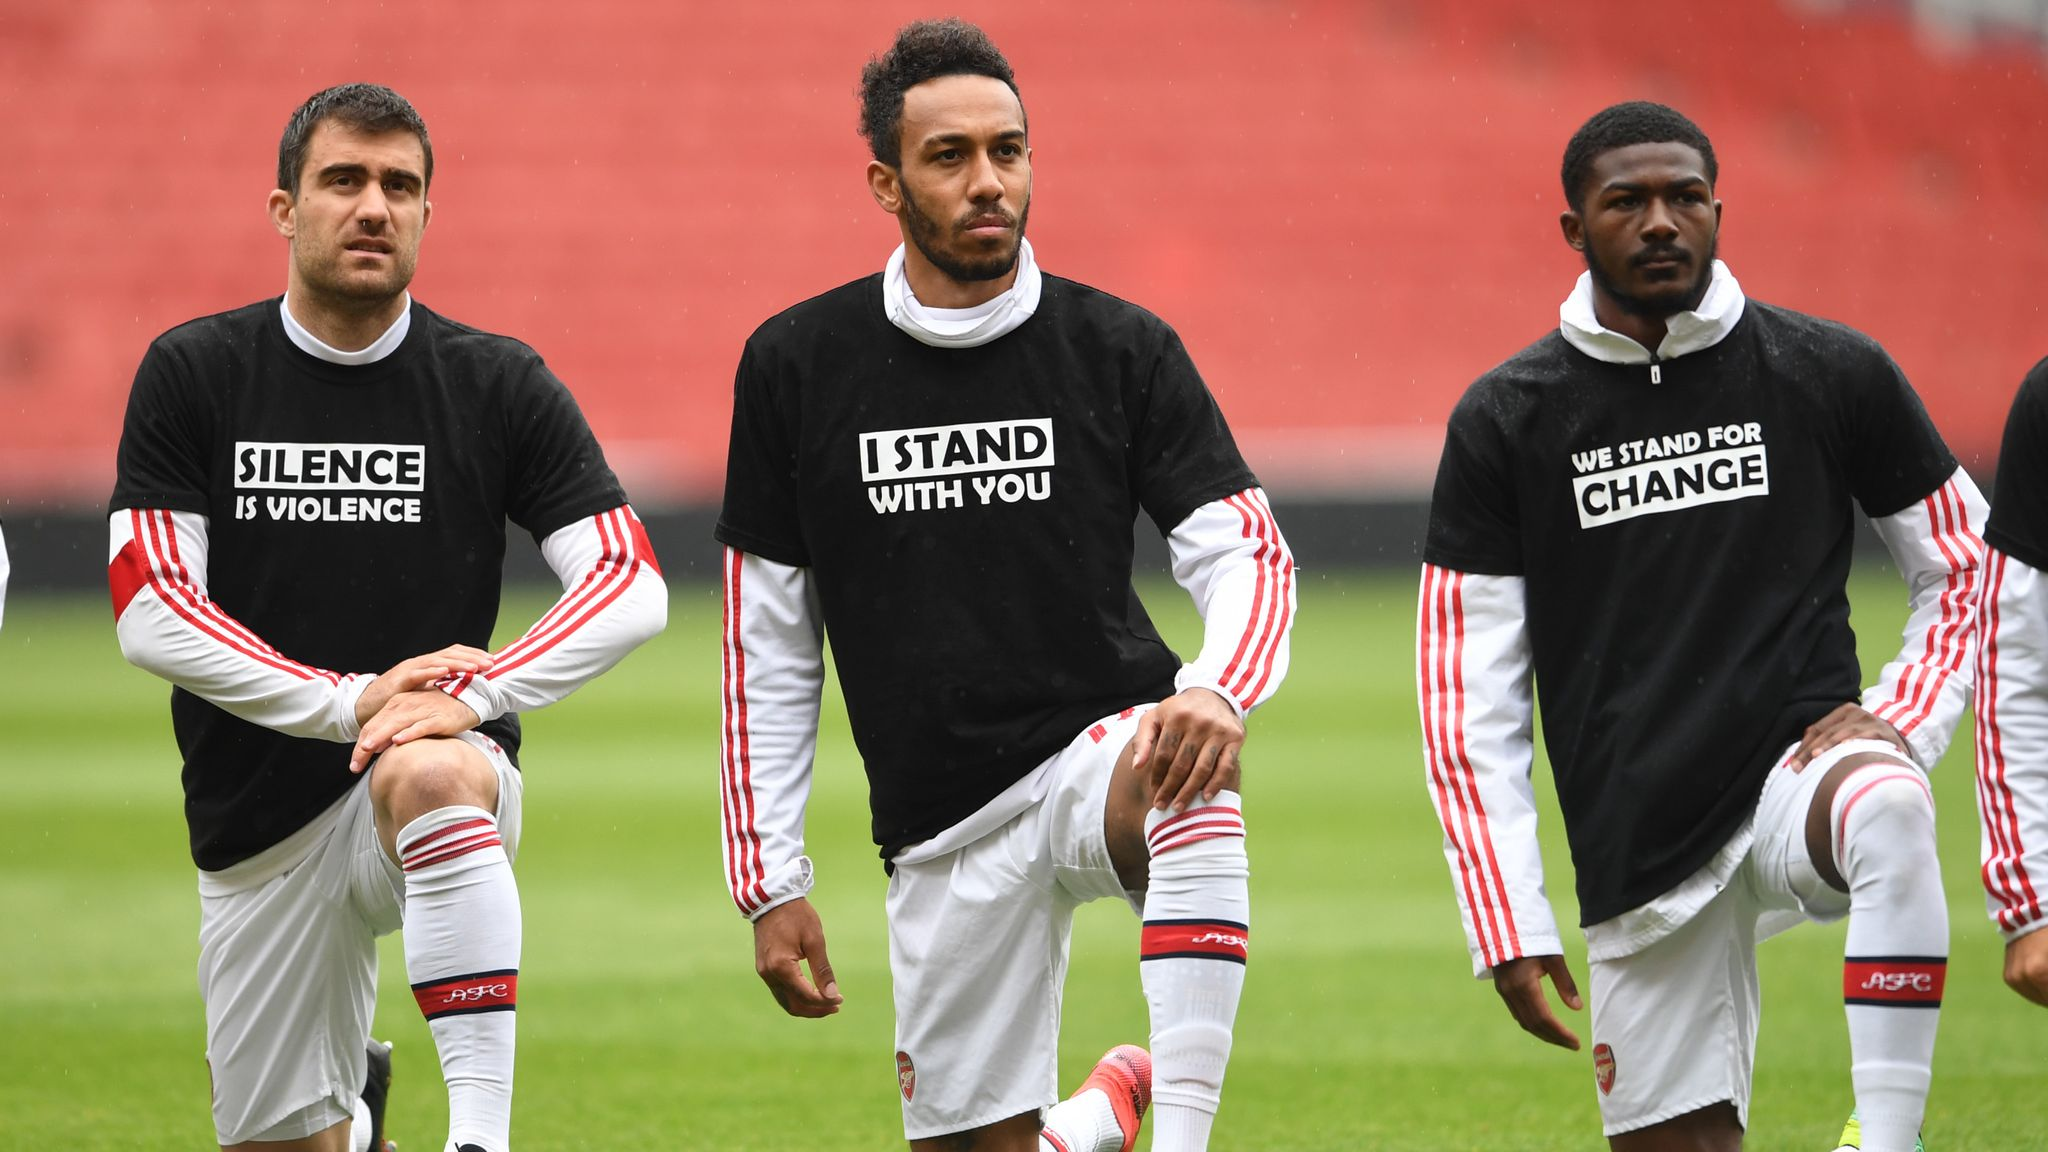 premier league players to replace names with black lives matter on shirts for first 12 games of restart uk news sky news premier league players to replace names